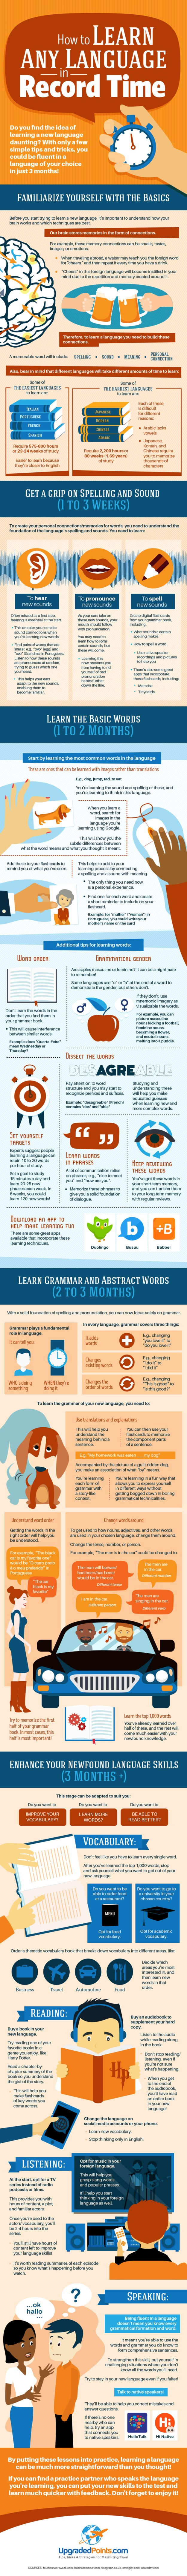 How To Learn Any Language In Record Time Infographic